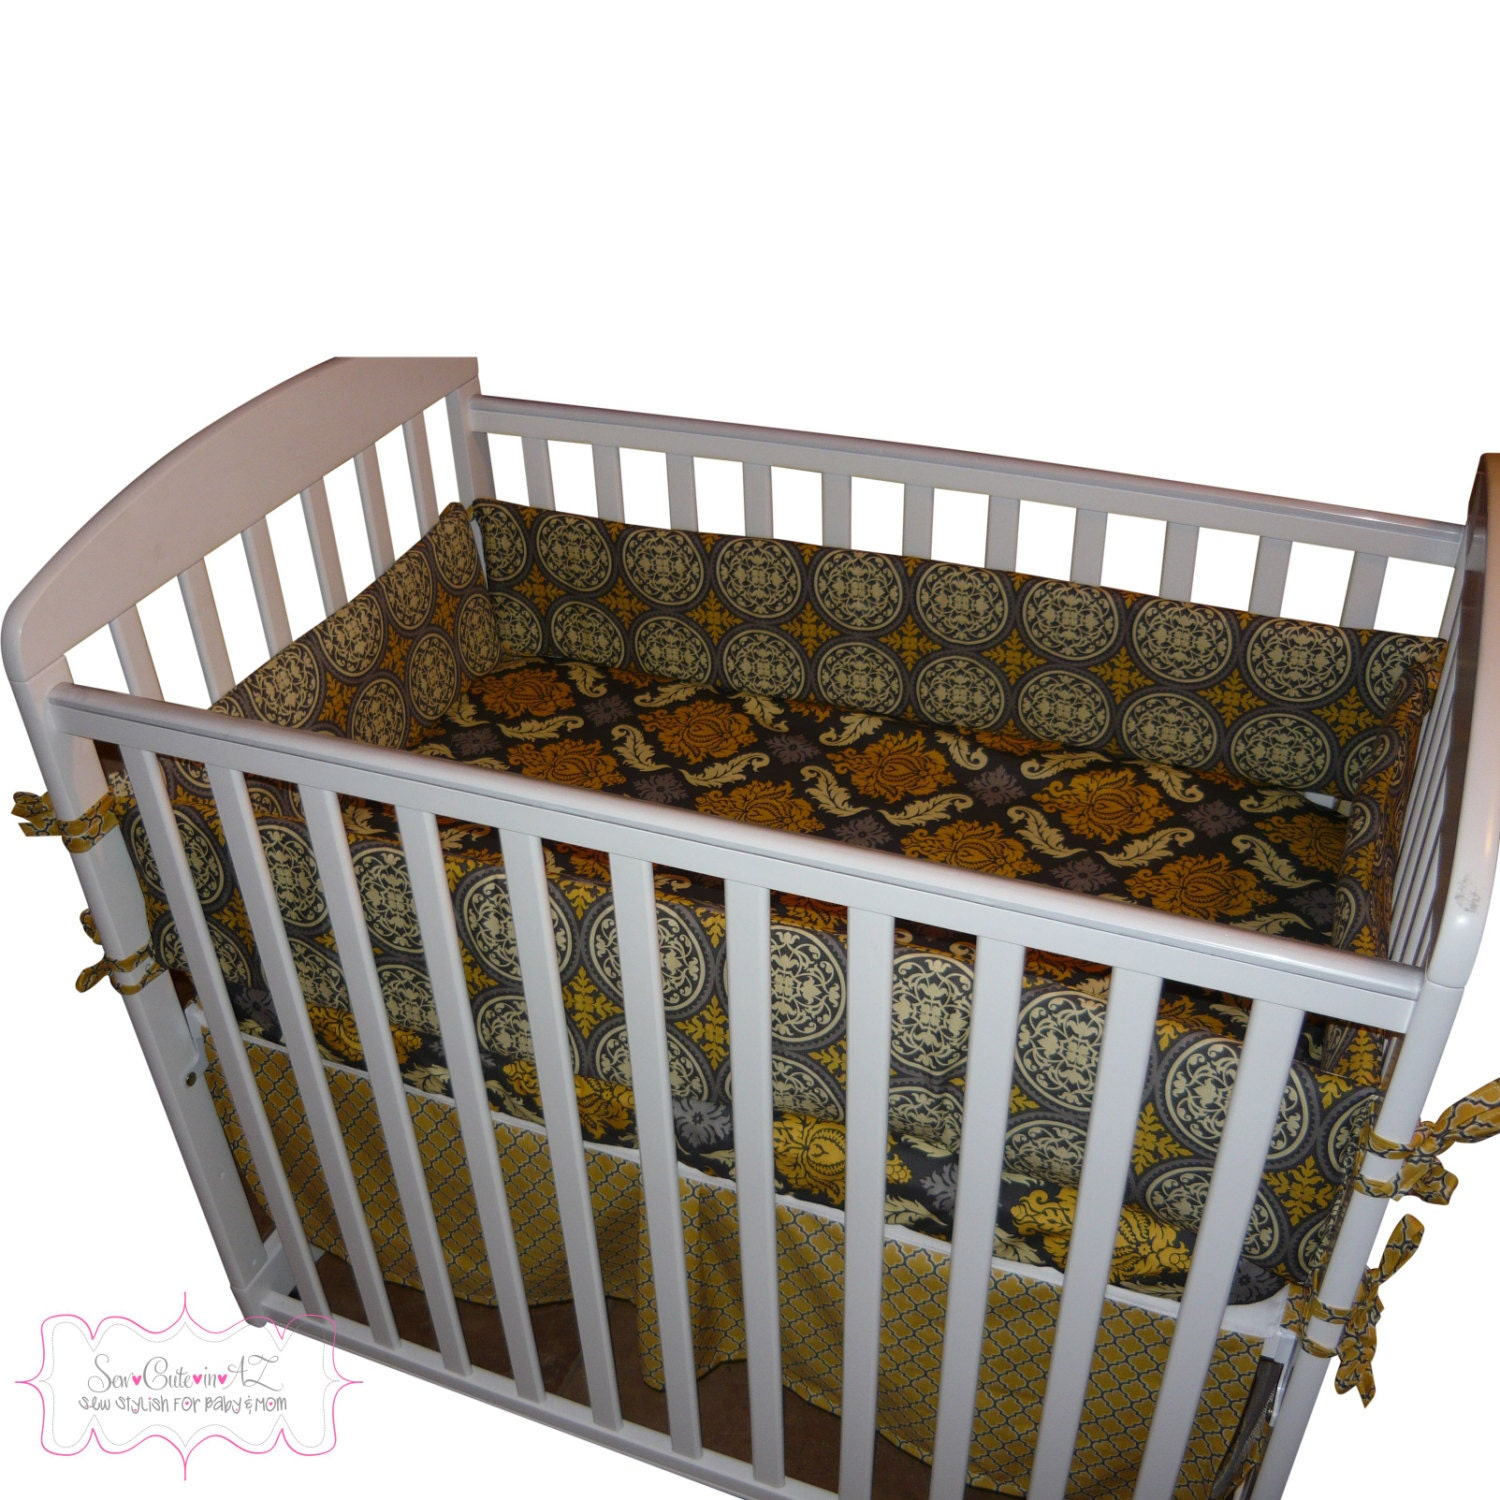 Items similar to design your own mini crib bedding set on etsy for Design my own bed set